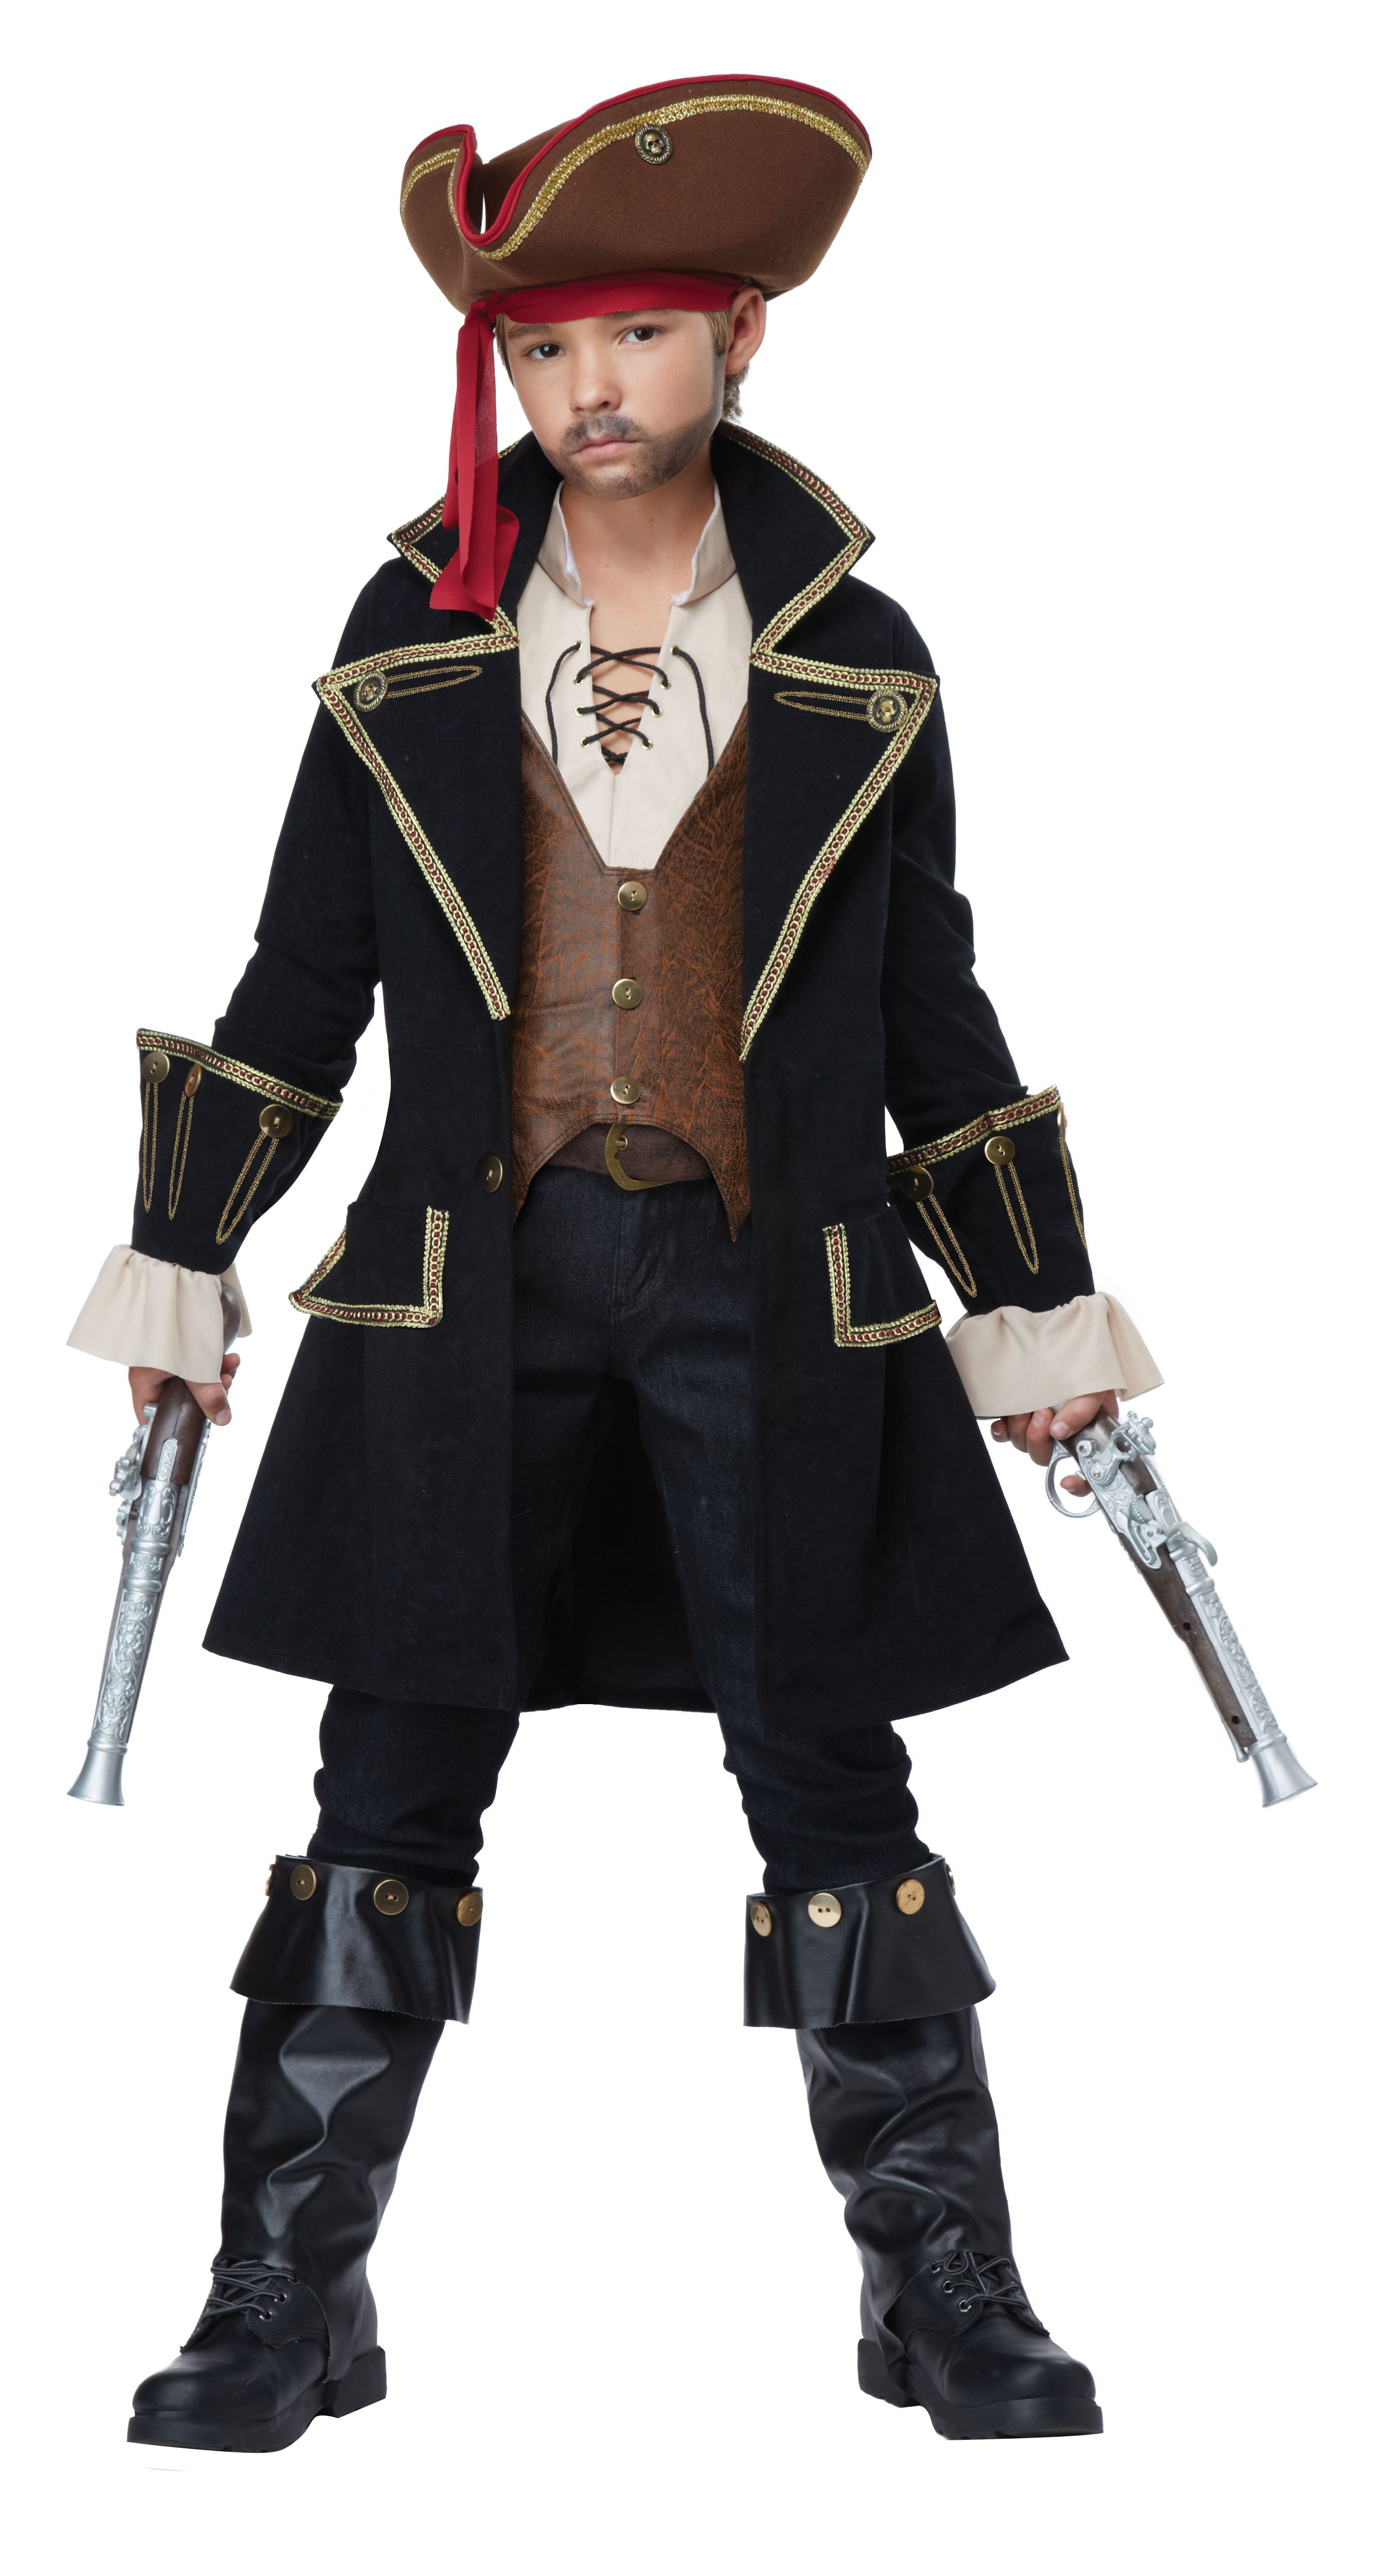 Deluxe Pirate Captain Hook Caribbean Costume Child Kids Boys Fancy Dress Costume